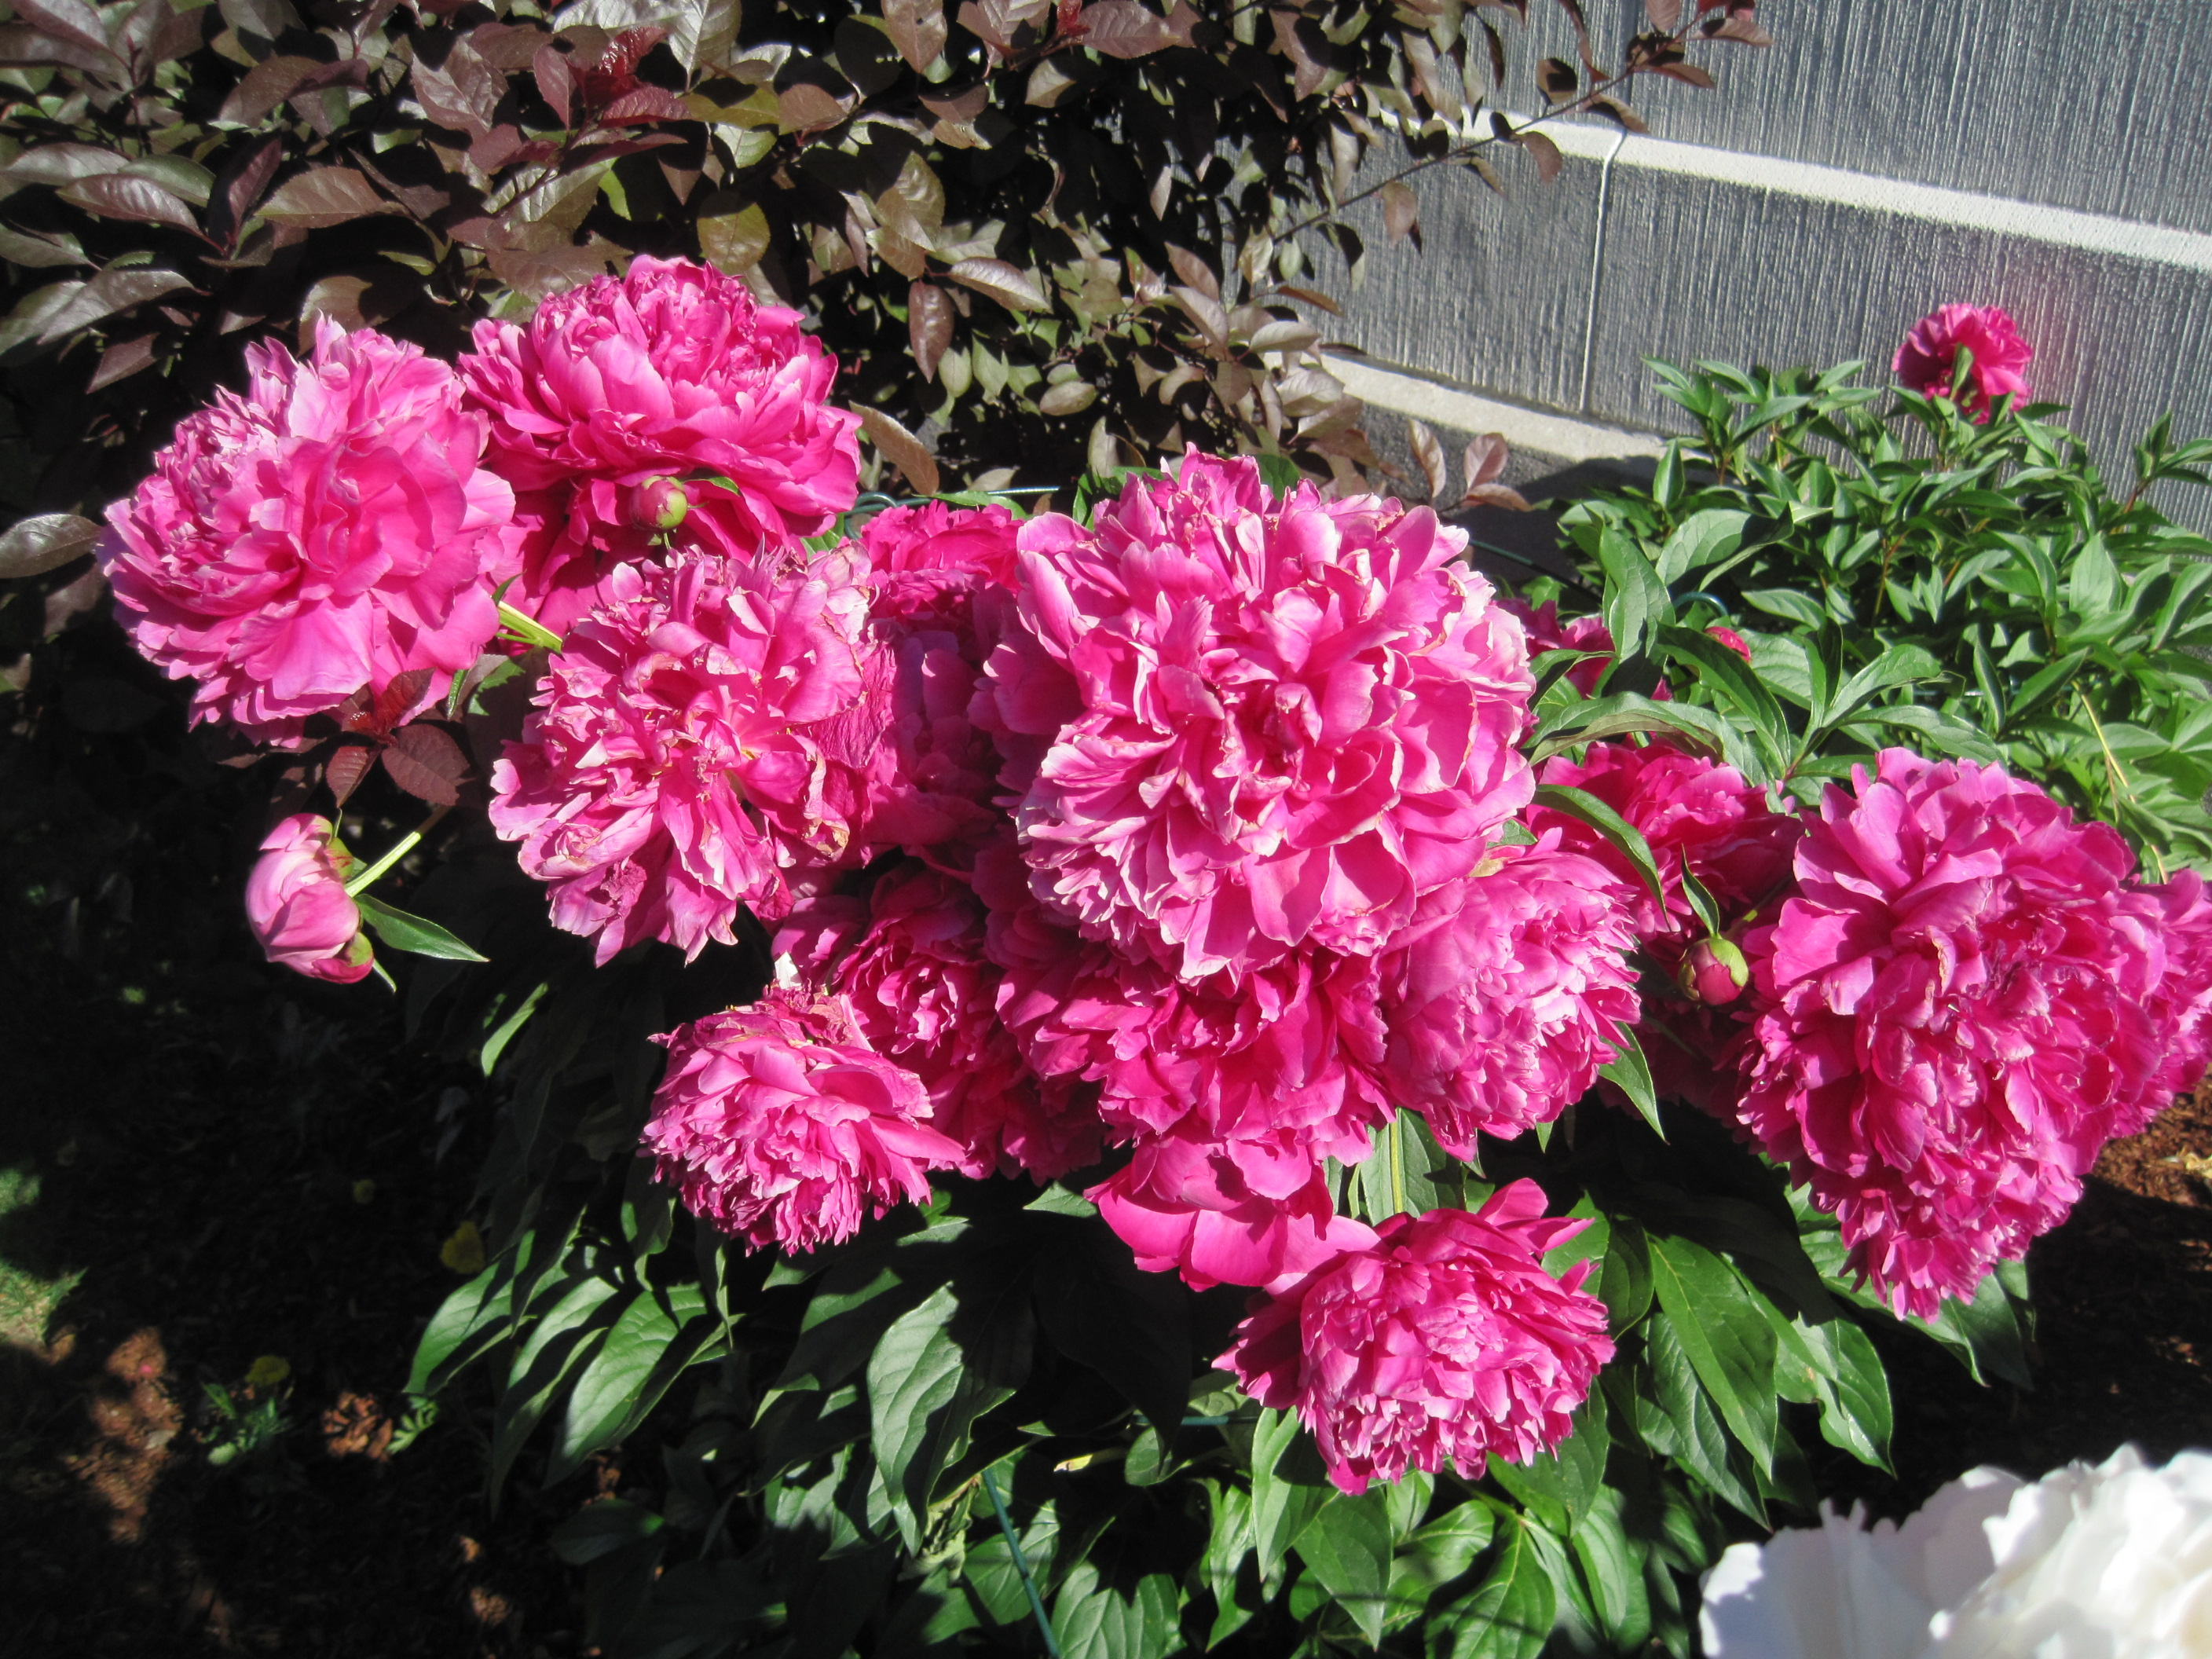 Peonies Season Extraordinary Of Are Peonies Perennials Flower Pictures